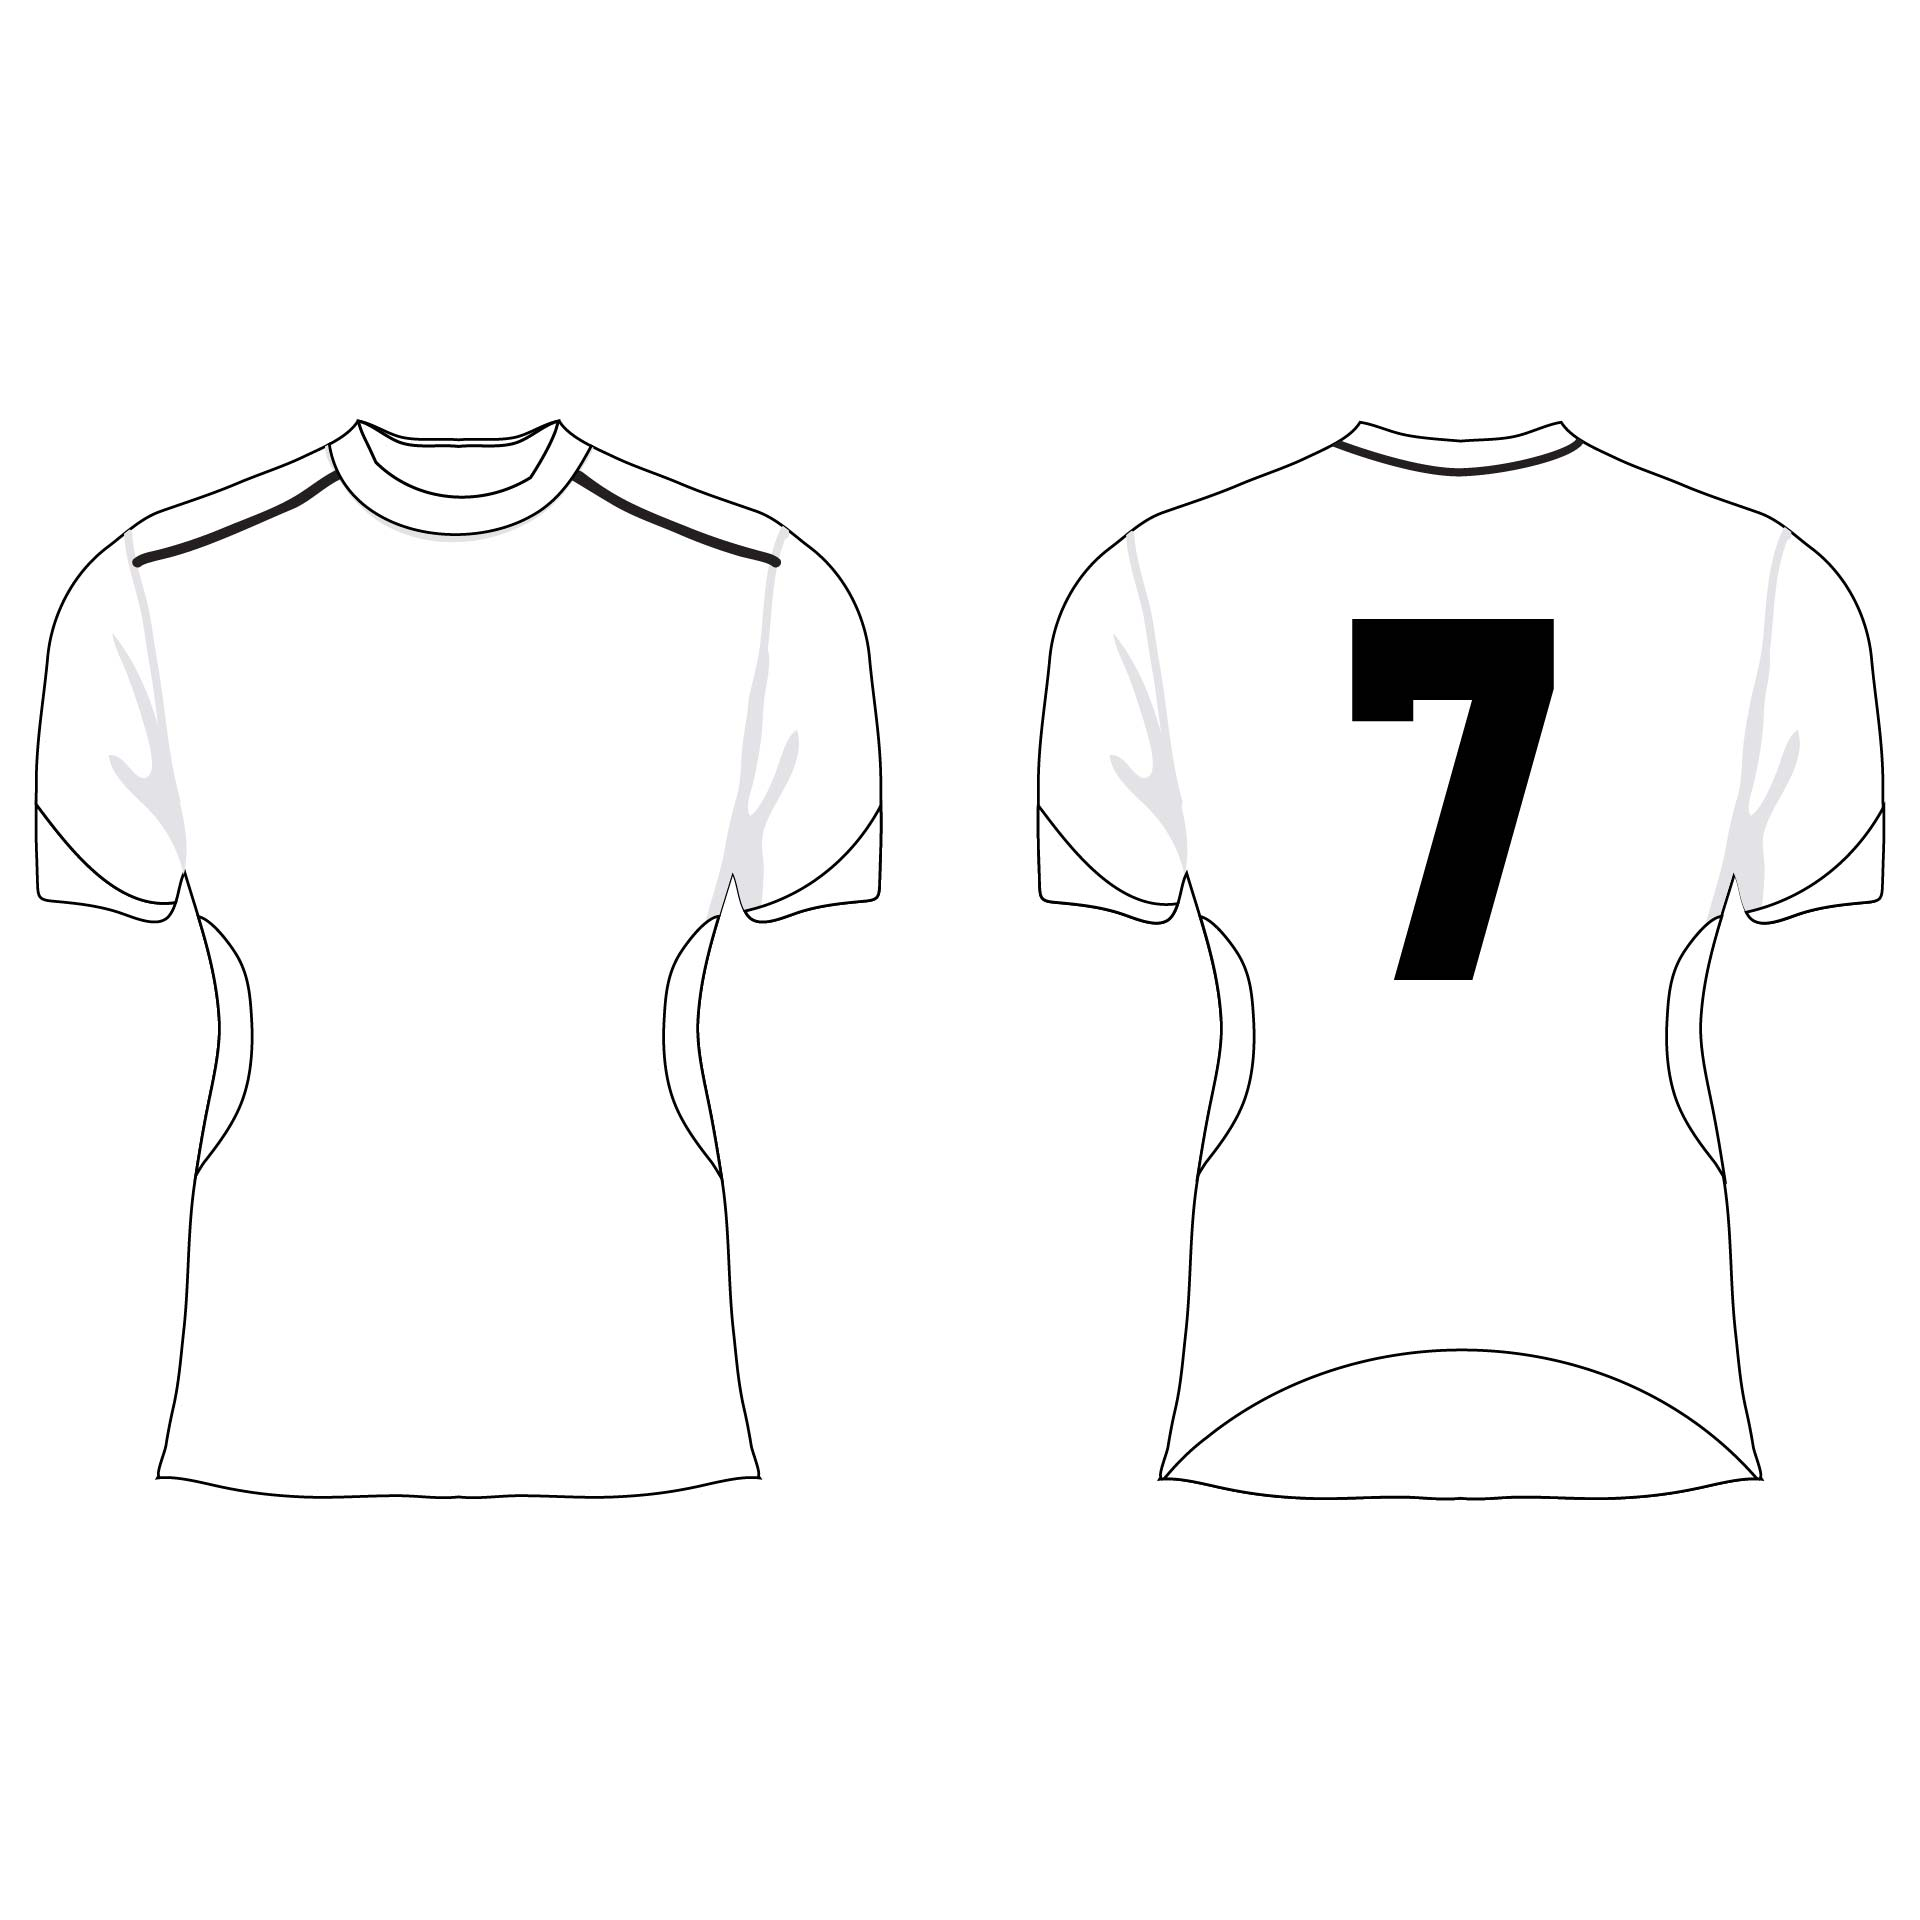 8 Best Images of Football Jersey Template Printable